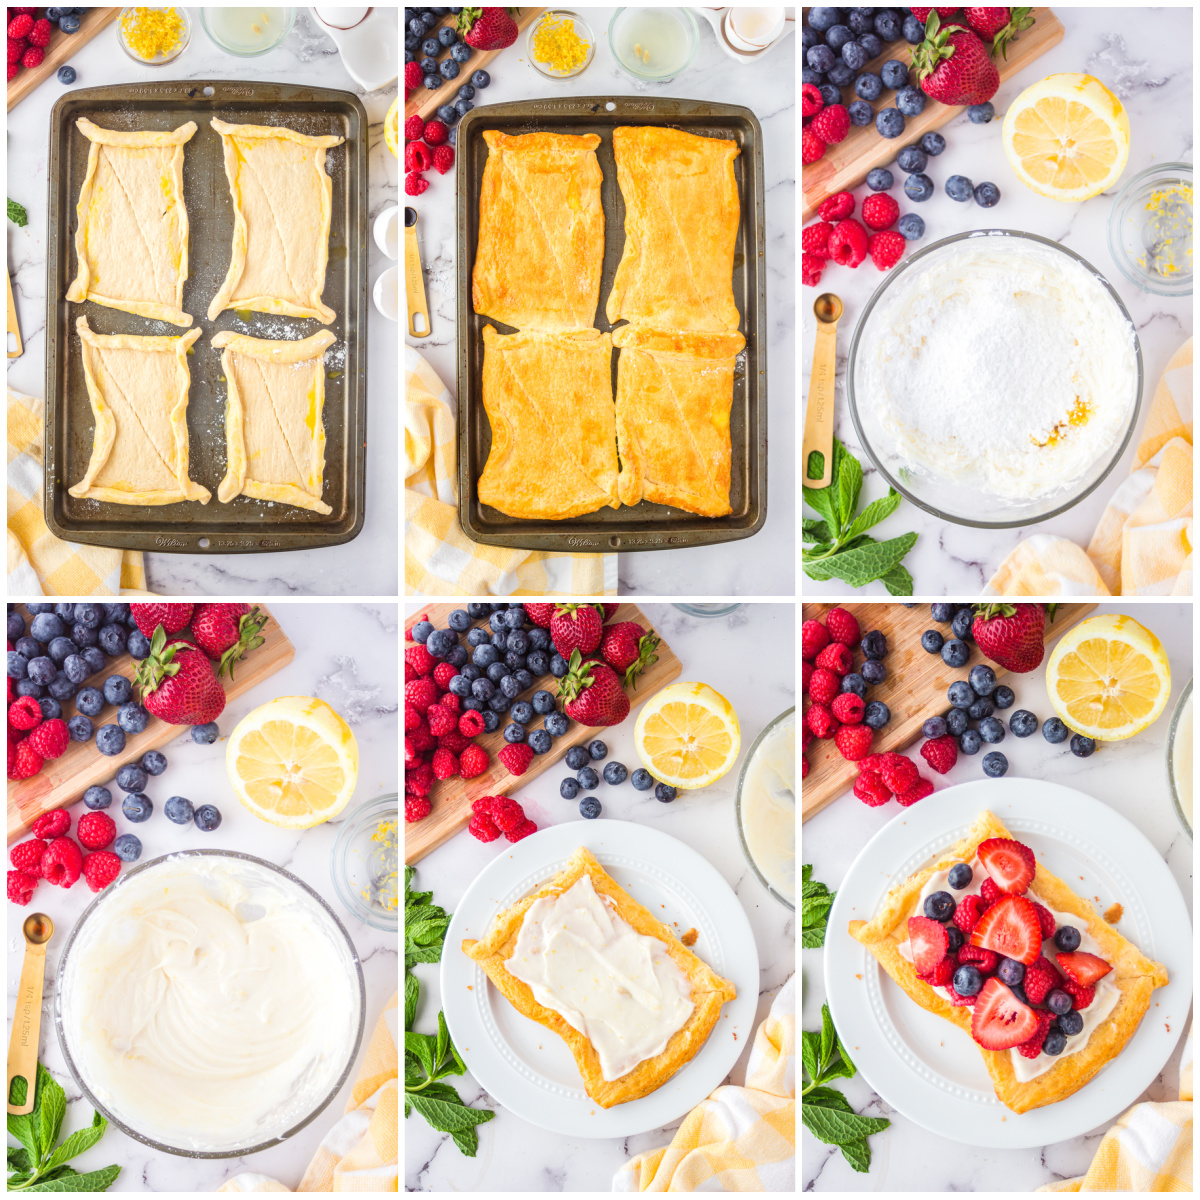 Step by step photos on how to make Berry Tarts